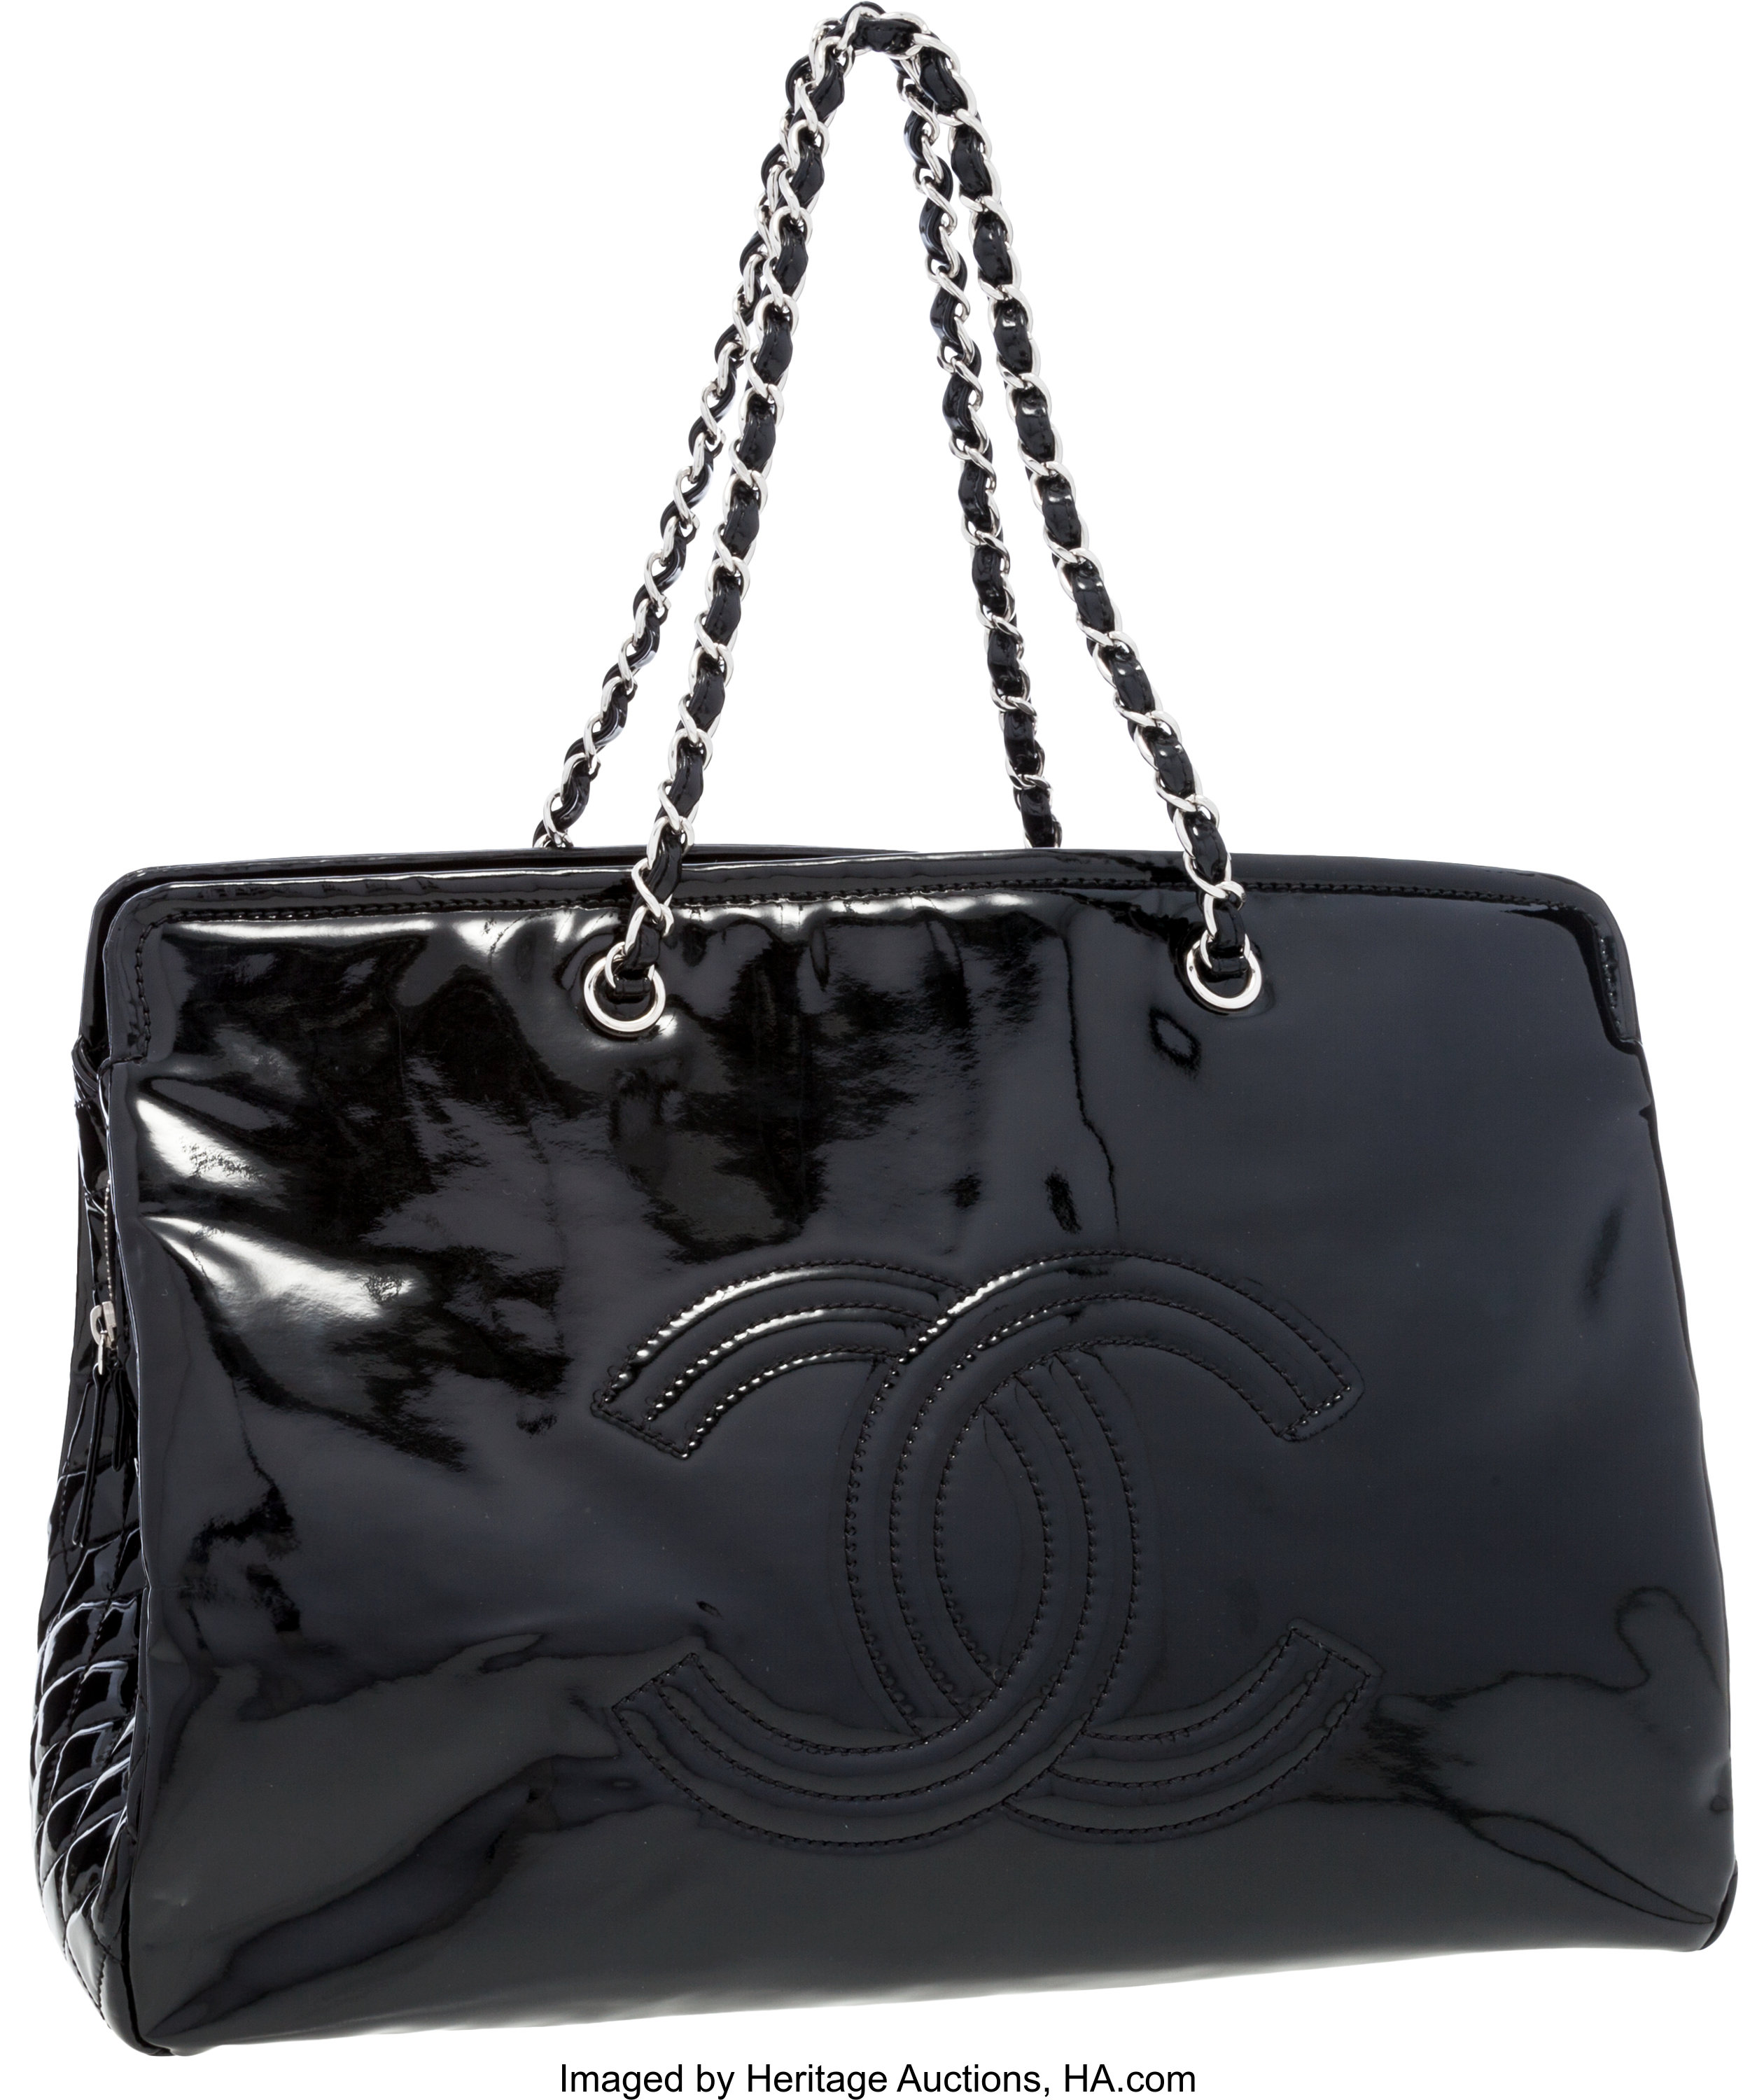 Prada Chain Flap Shoulder Bag Diagramme Quilted Leather